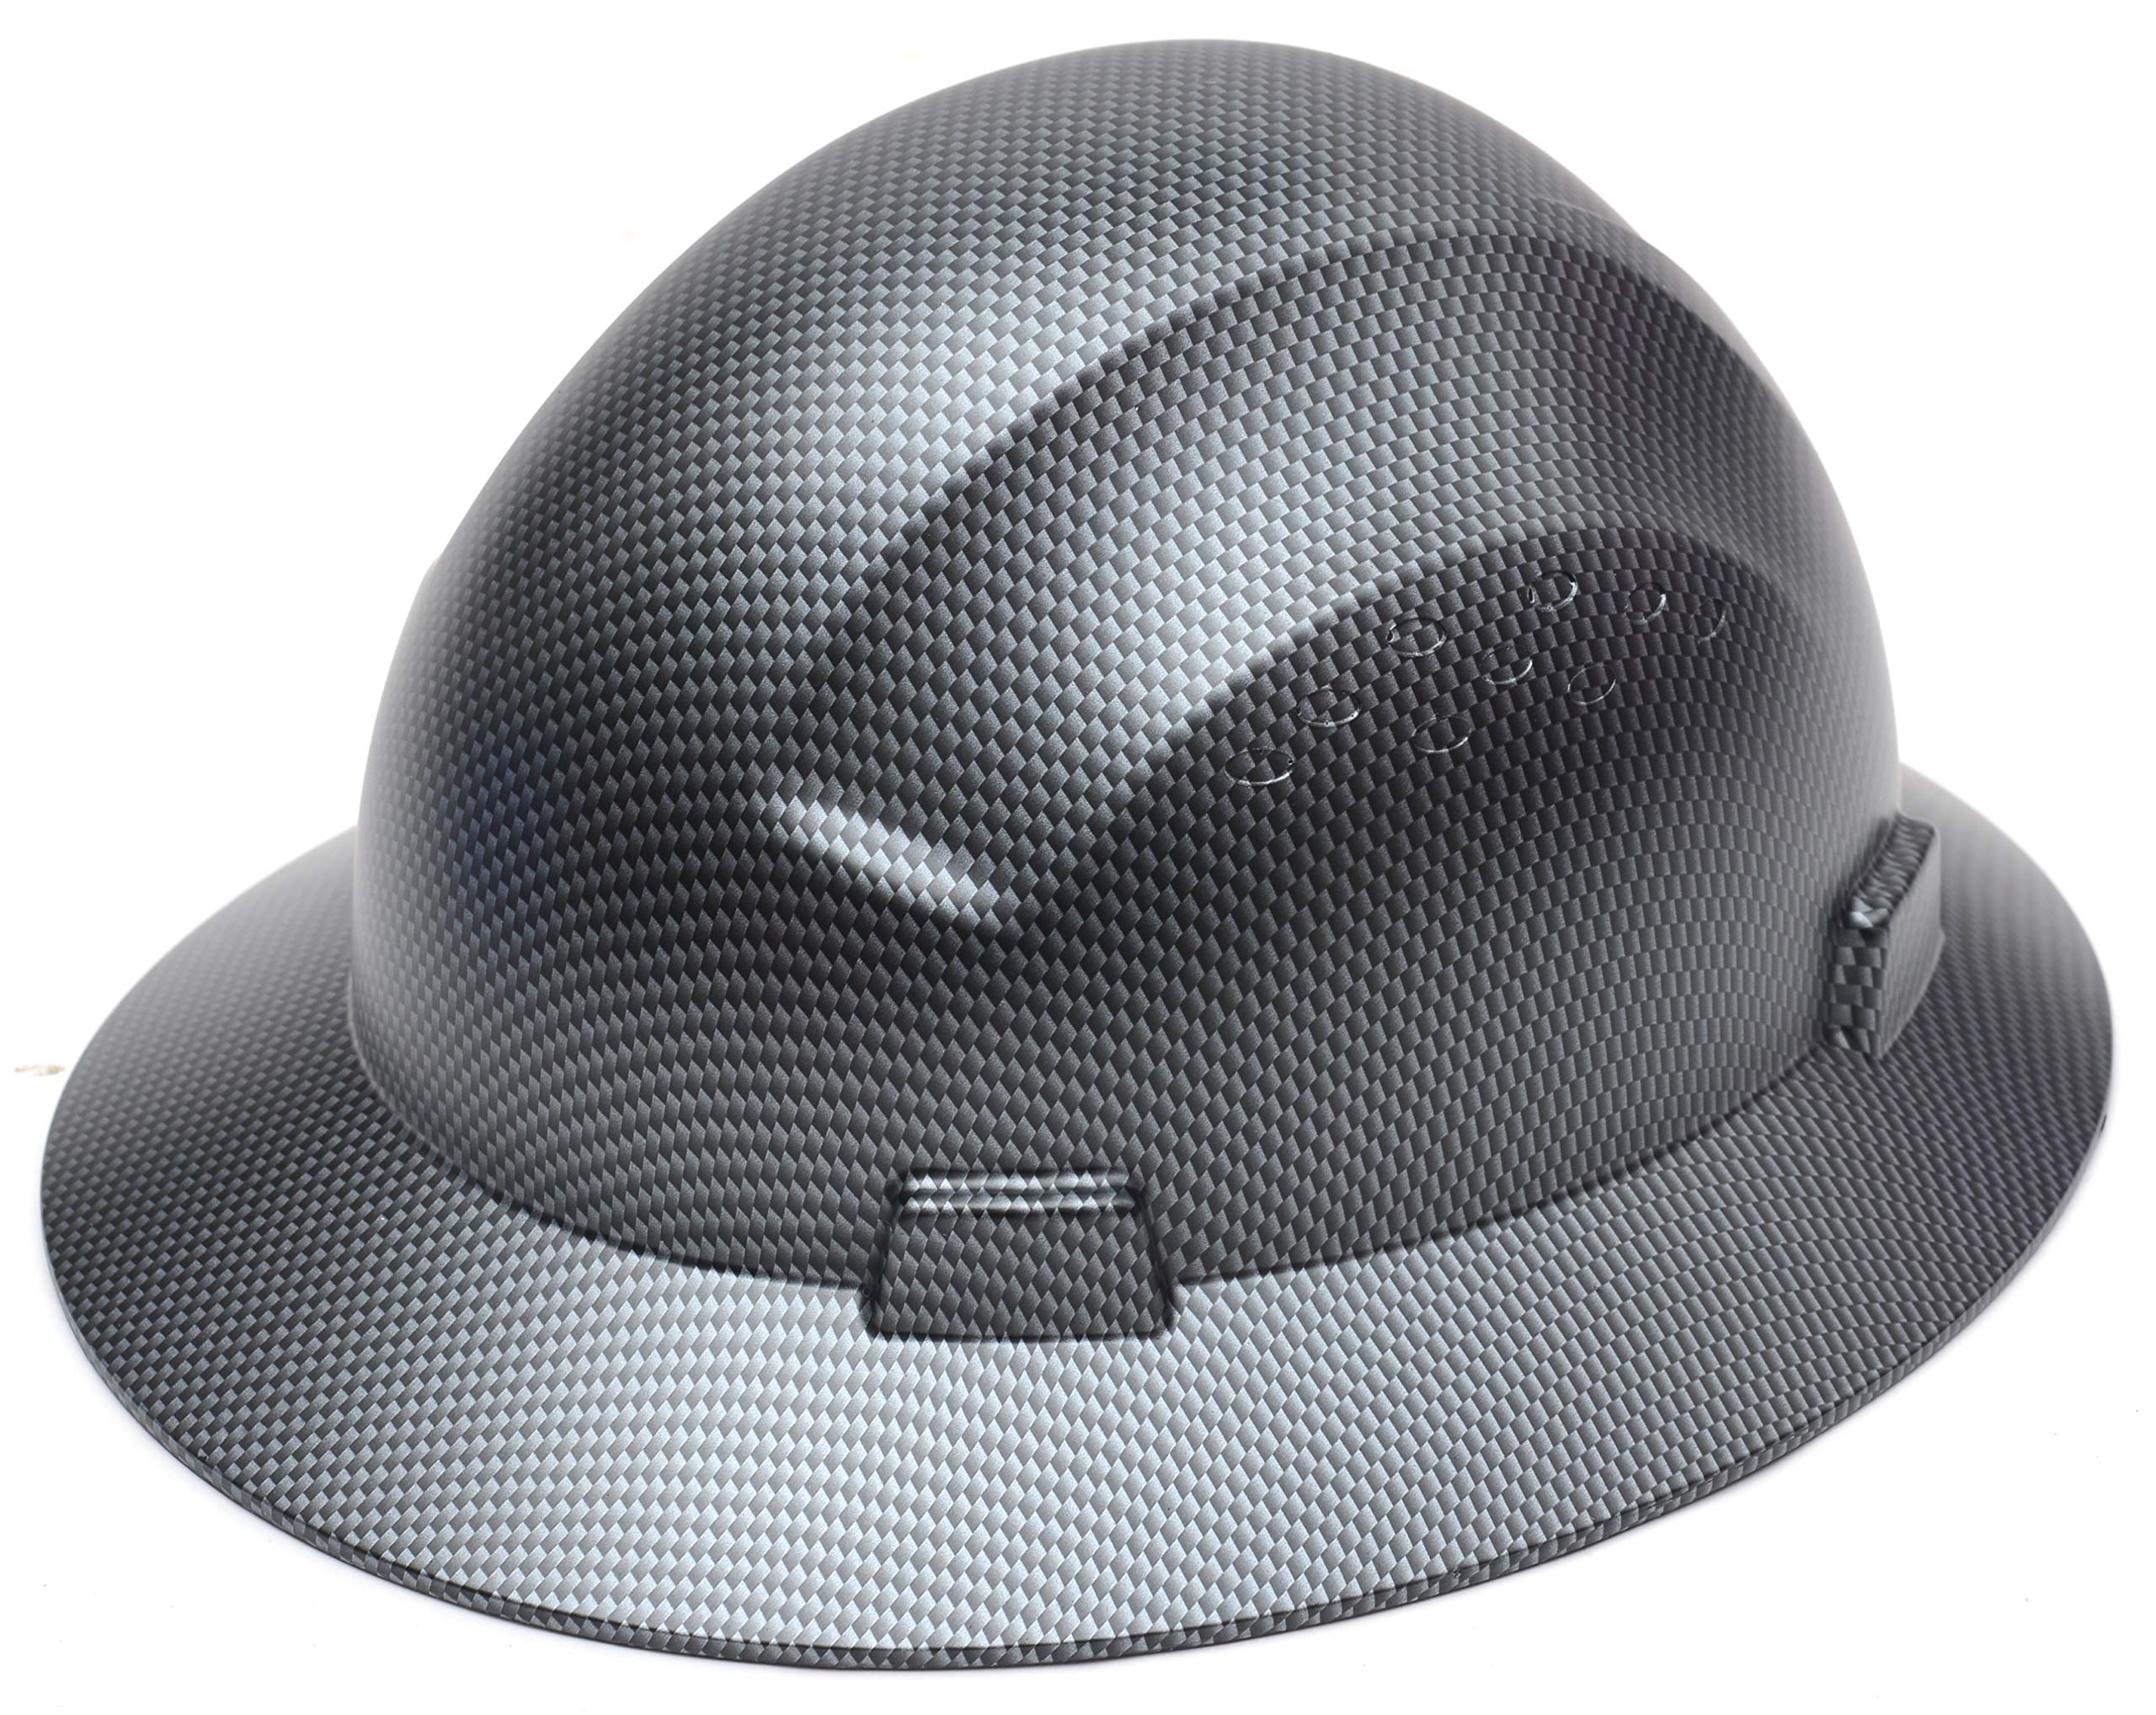 CJ Safety Full Brim Fiber Glass Hard Hat with Fas-Trac Suspension (Black) by CJ Safety